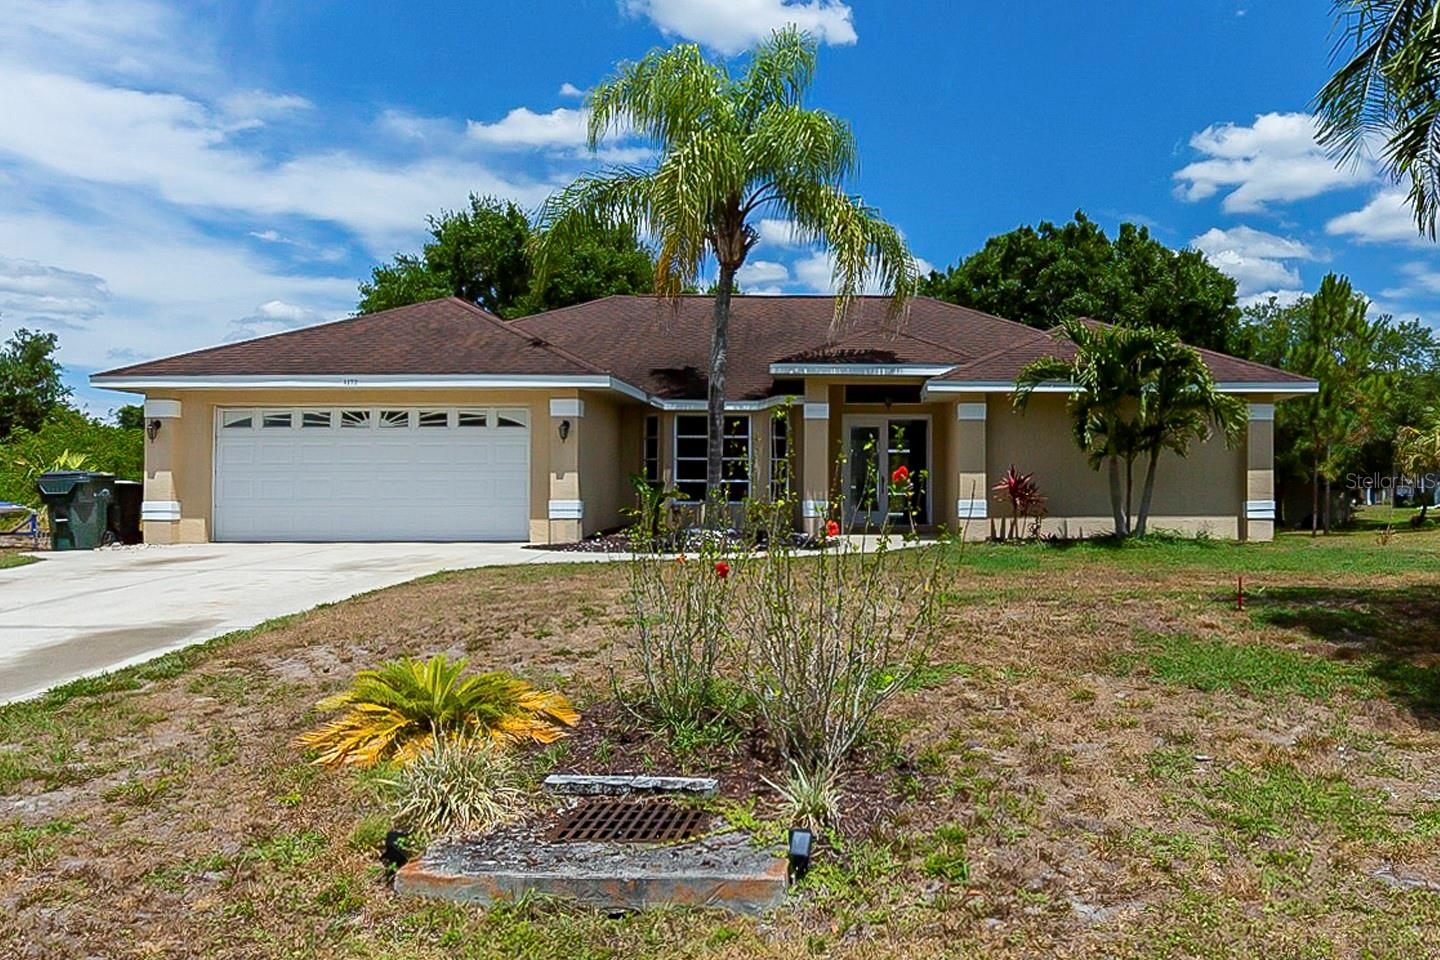 Primary photo of recently sold MLS# O5945493